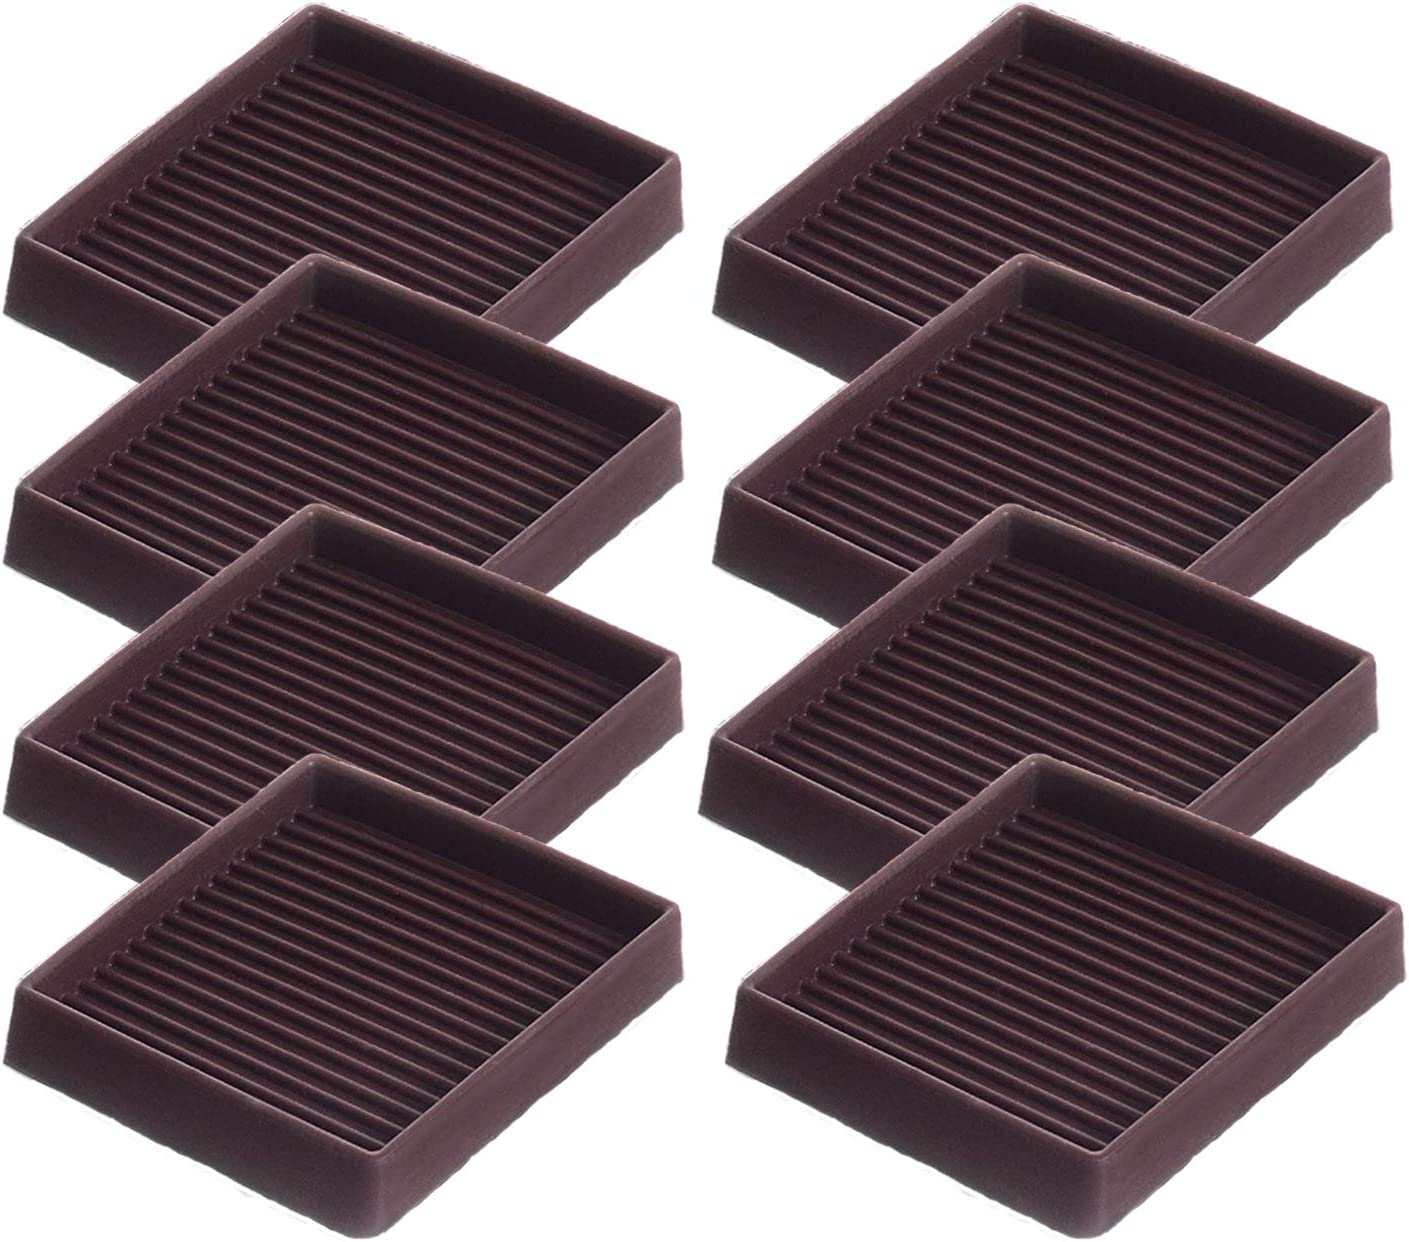 3X3 Square Rubber Furniture Caster Cups with Anti-Sliding Floor Grip to Protect Floors,Best Furniture Caster Cups, Anti-Sliding Protectors for All Floors & Carpet, Prevents Scratches,Brown (Set of 8)